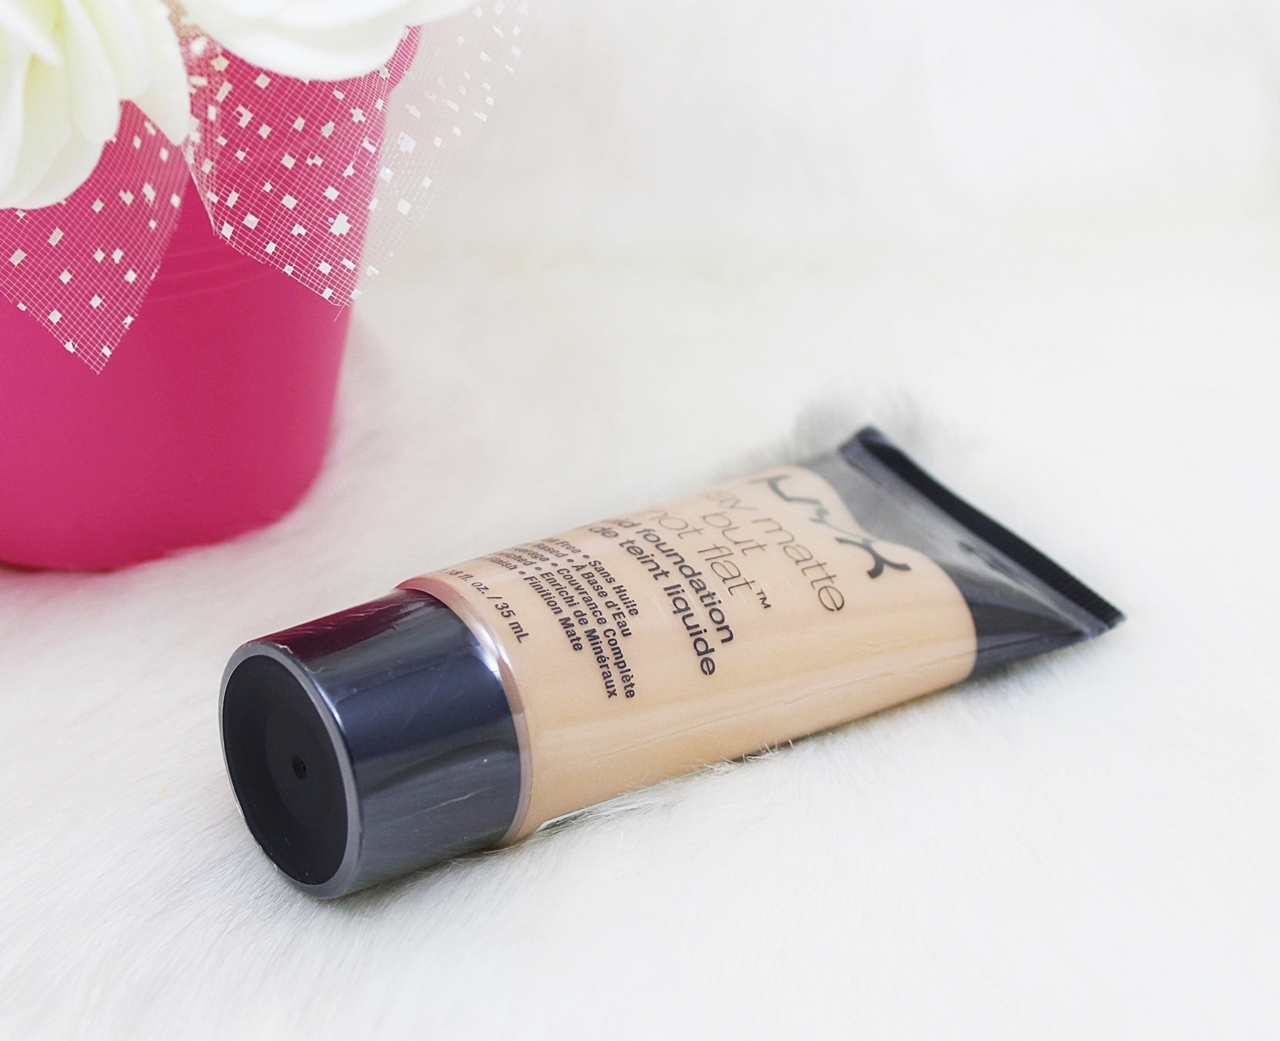 NYX Warm Stay Matte But Not Flat Liquid Foundation